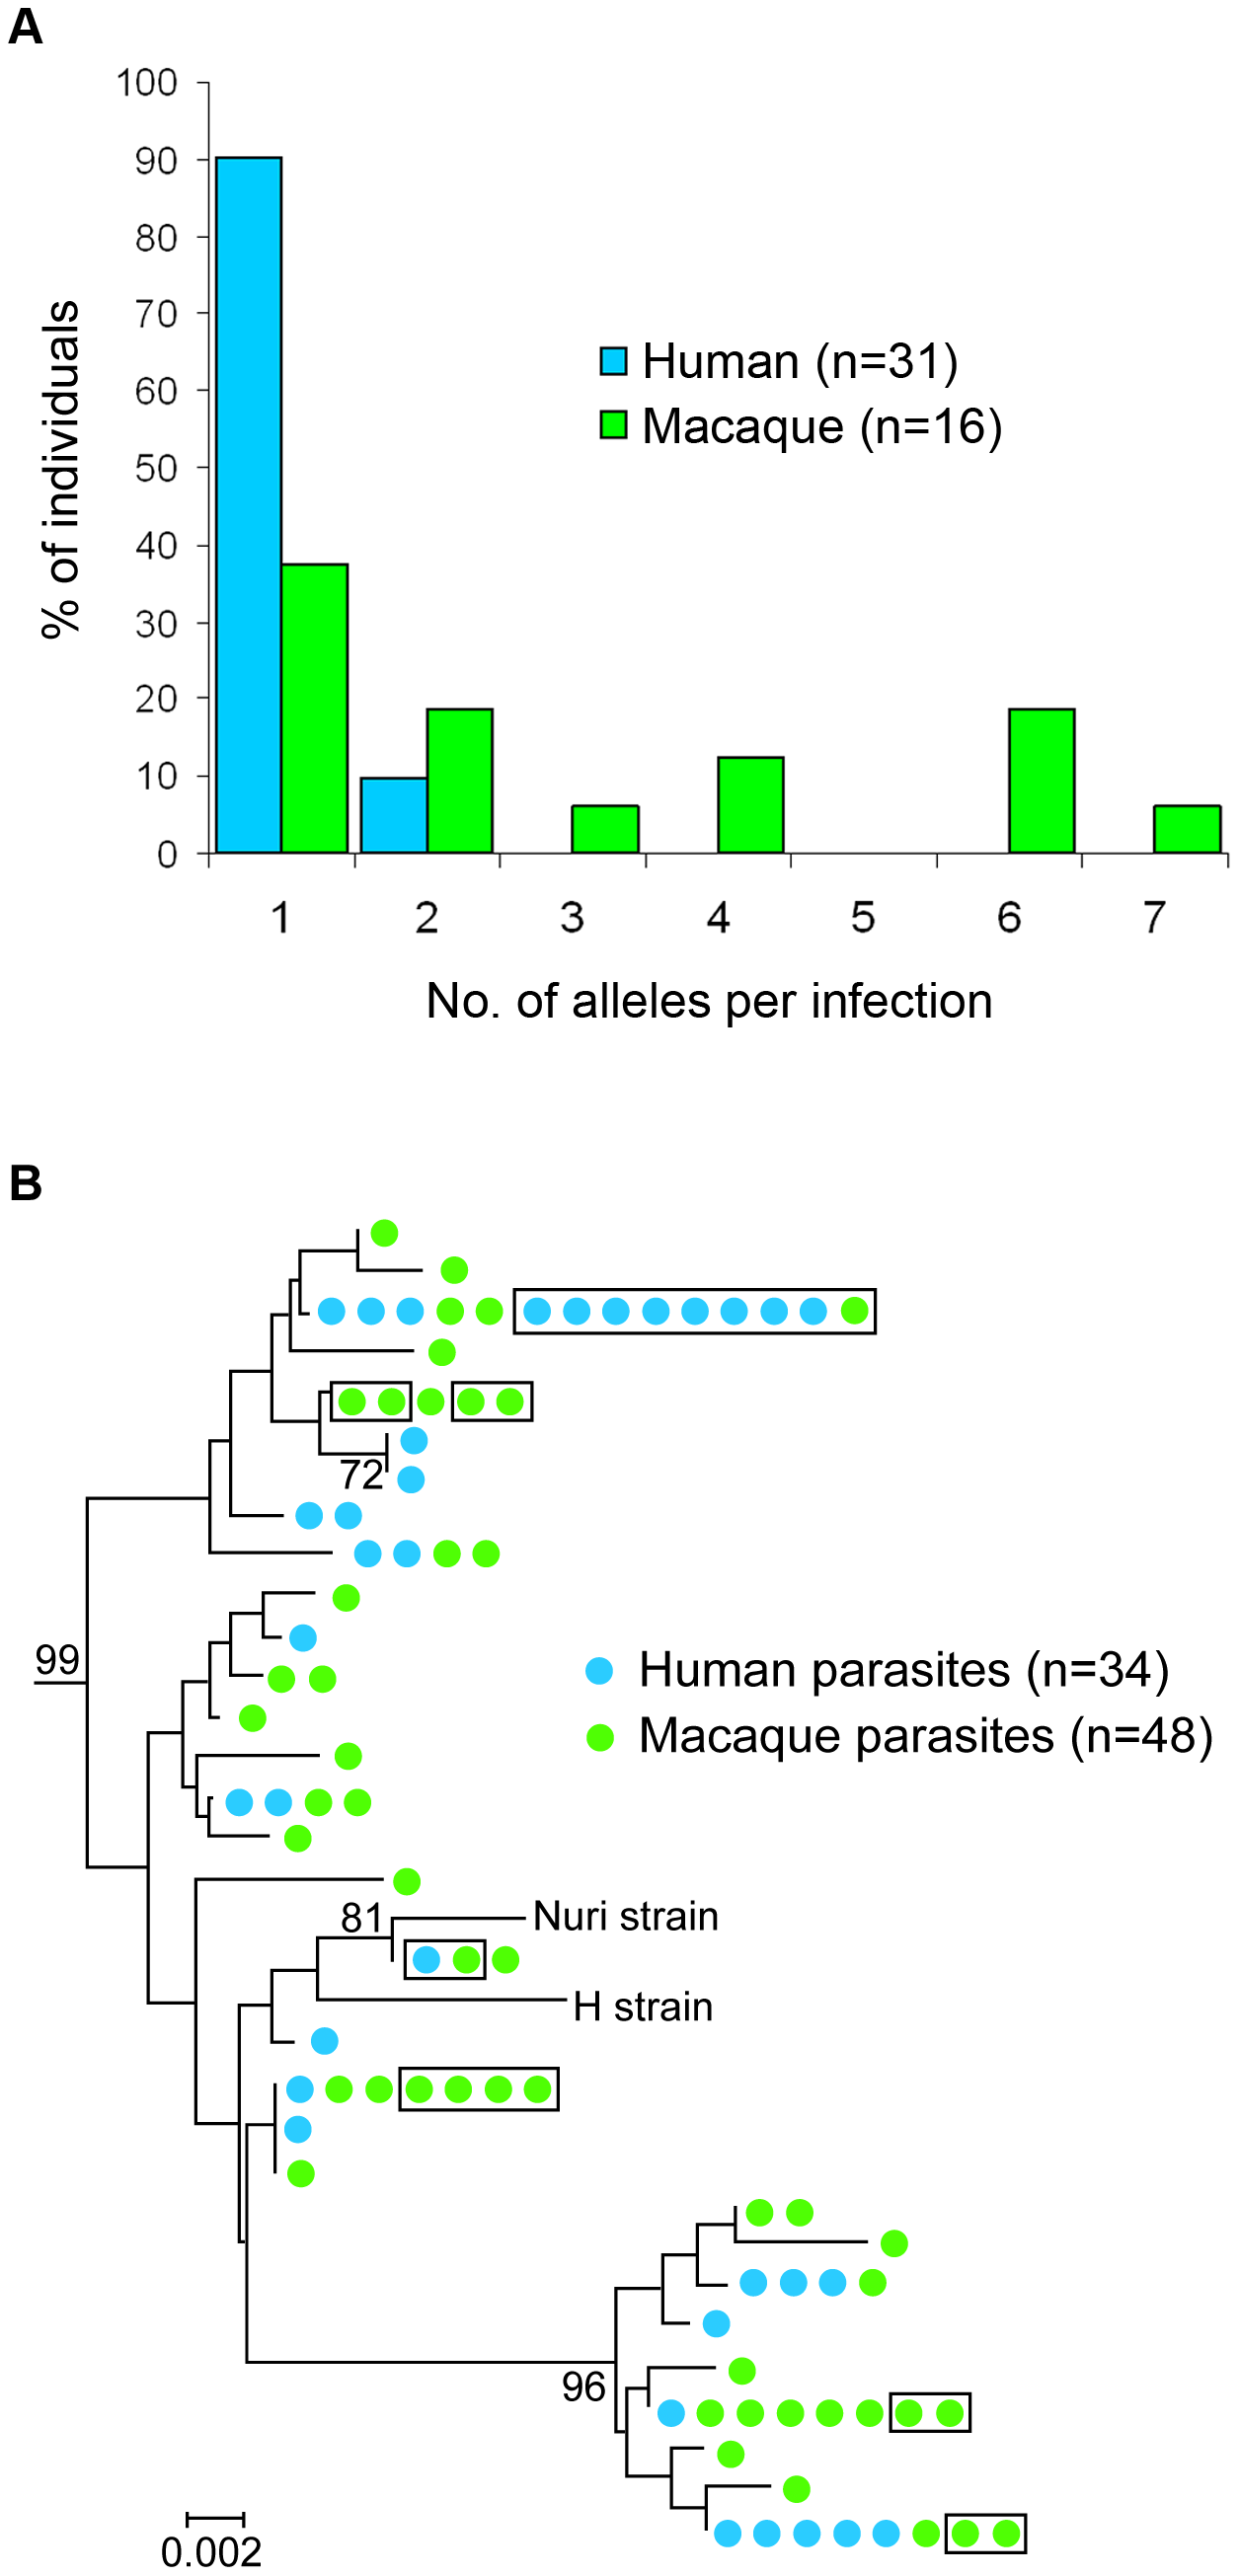 Analyses of <i>P. knowlesi csp</i> gene sequences from infections of macaques and humans.